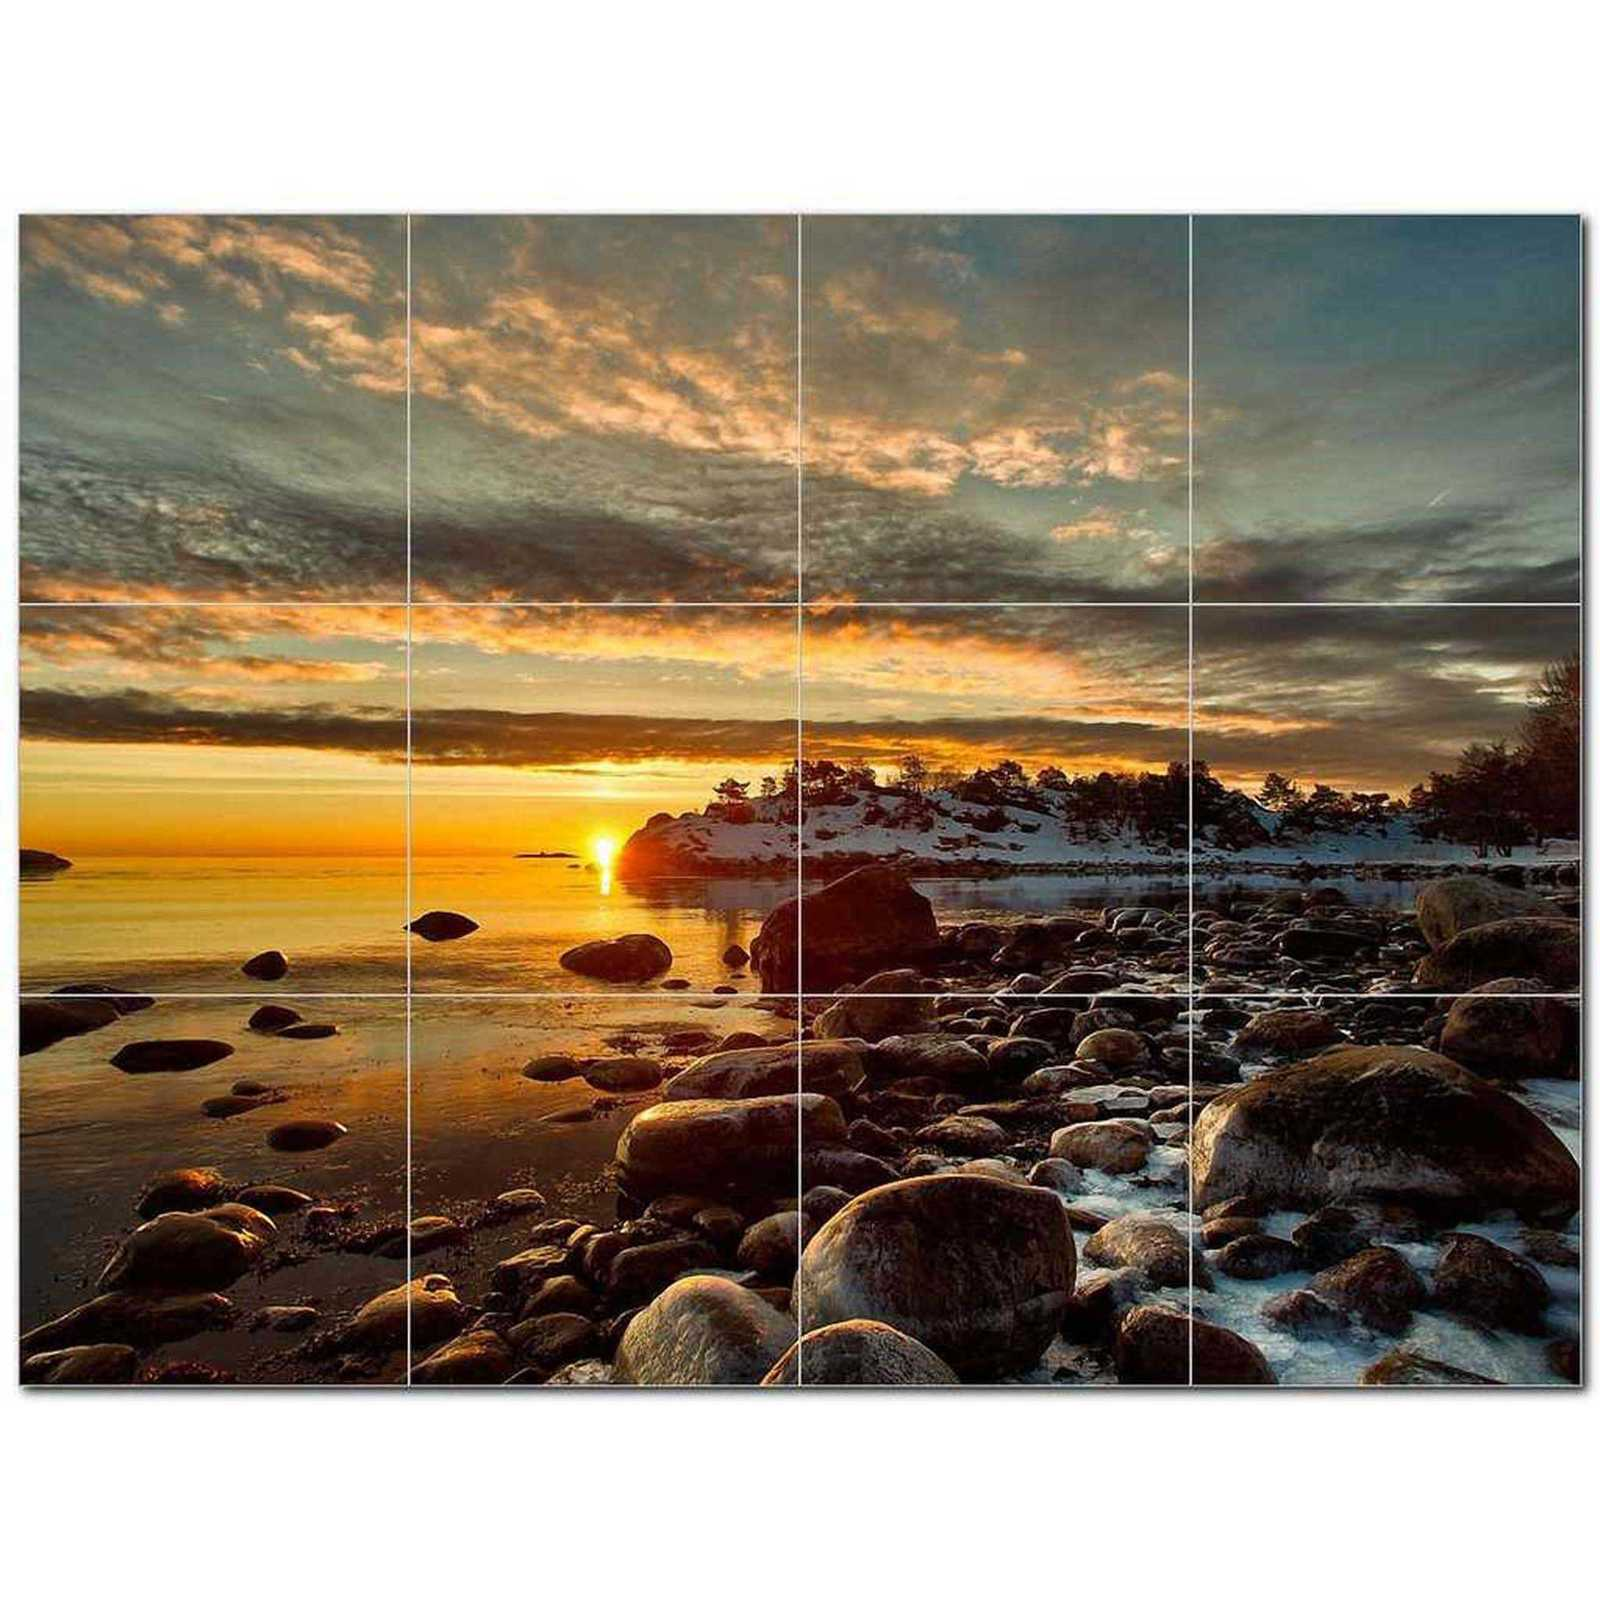 Primary image for Sunset Picture Ceramic Tile Mural Kitchen Backsplash Bathroom Shower BAZ405963